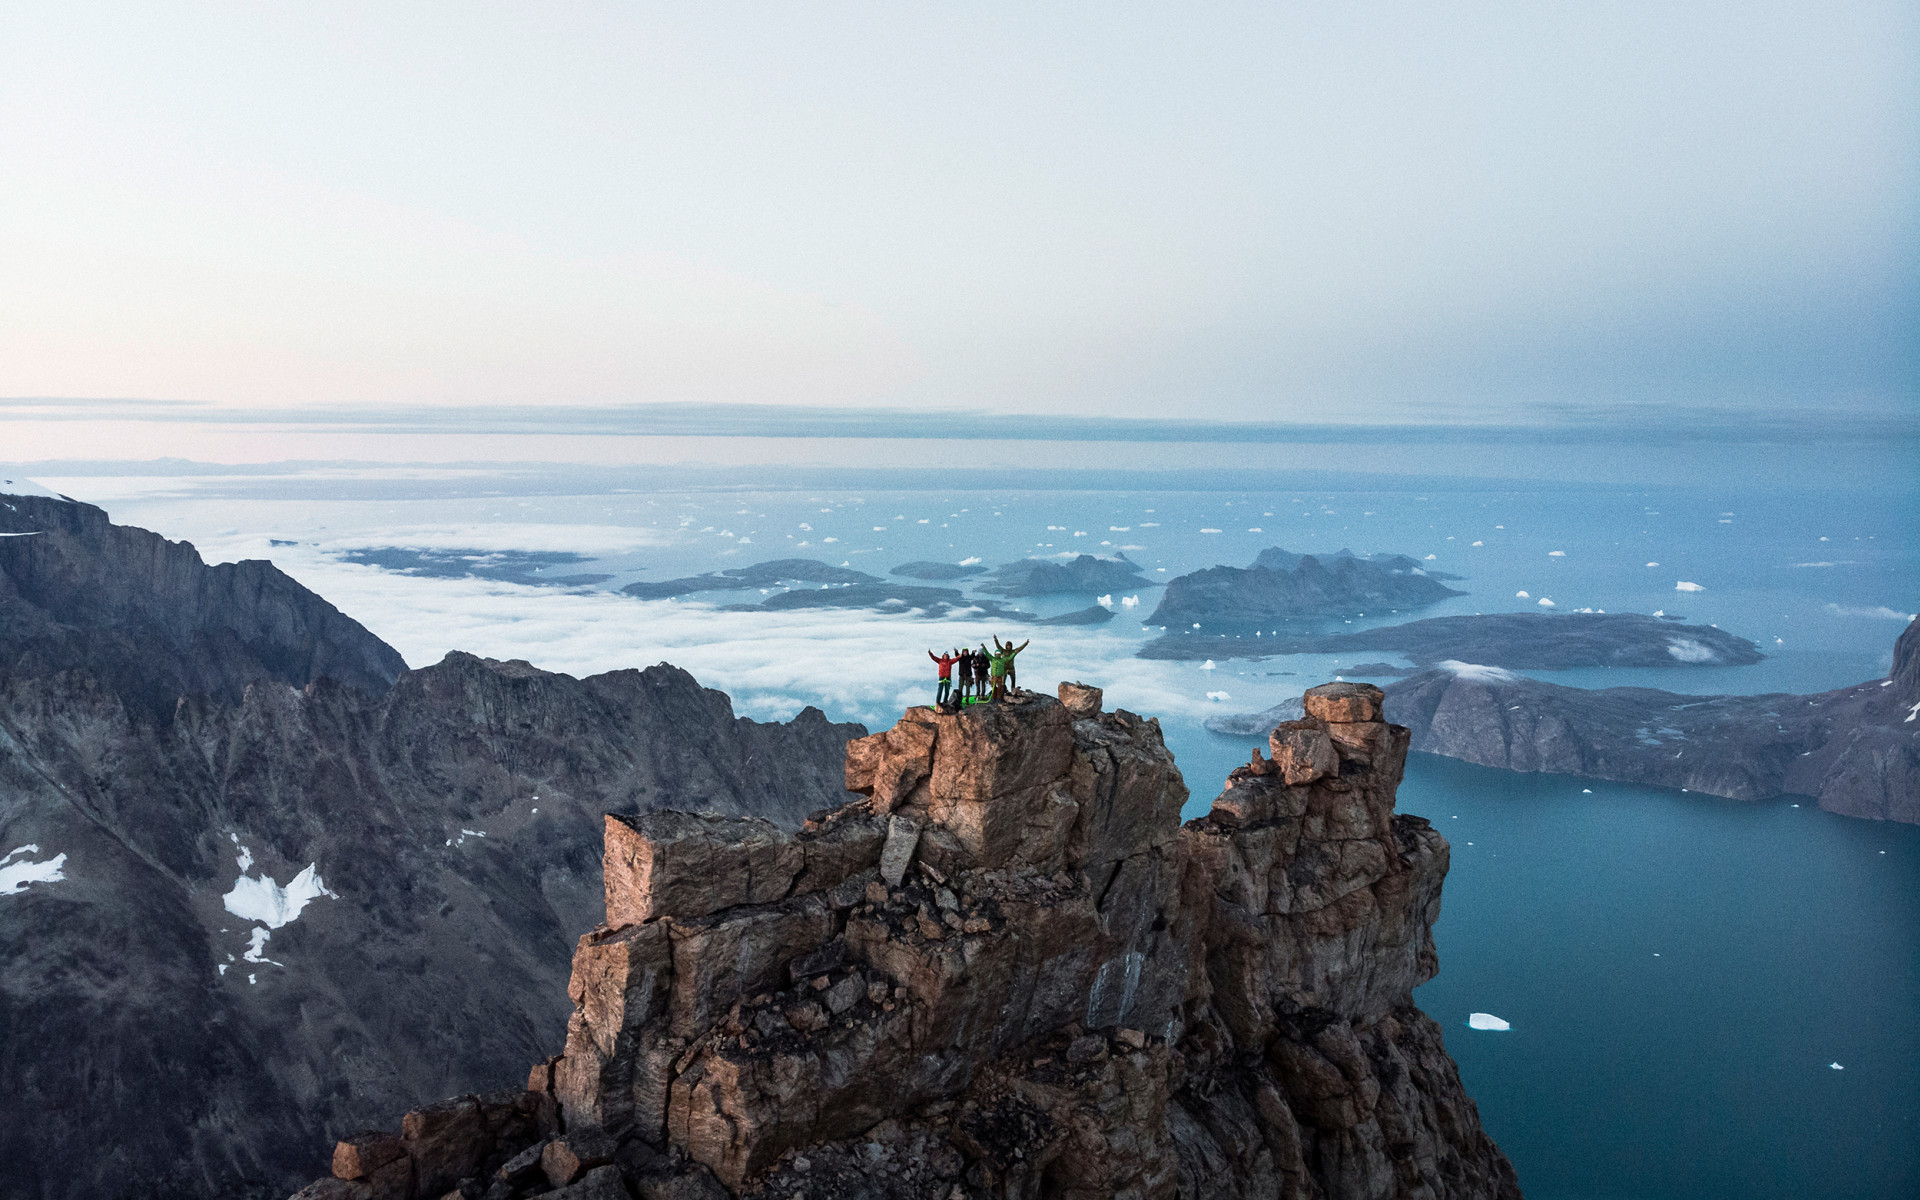 For Stefan Glowacz, the adventure of Greenland is finally completed.